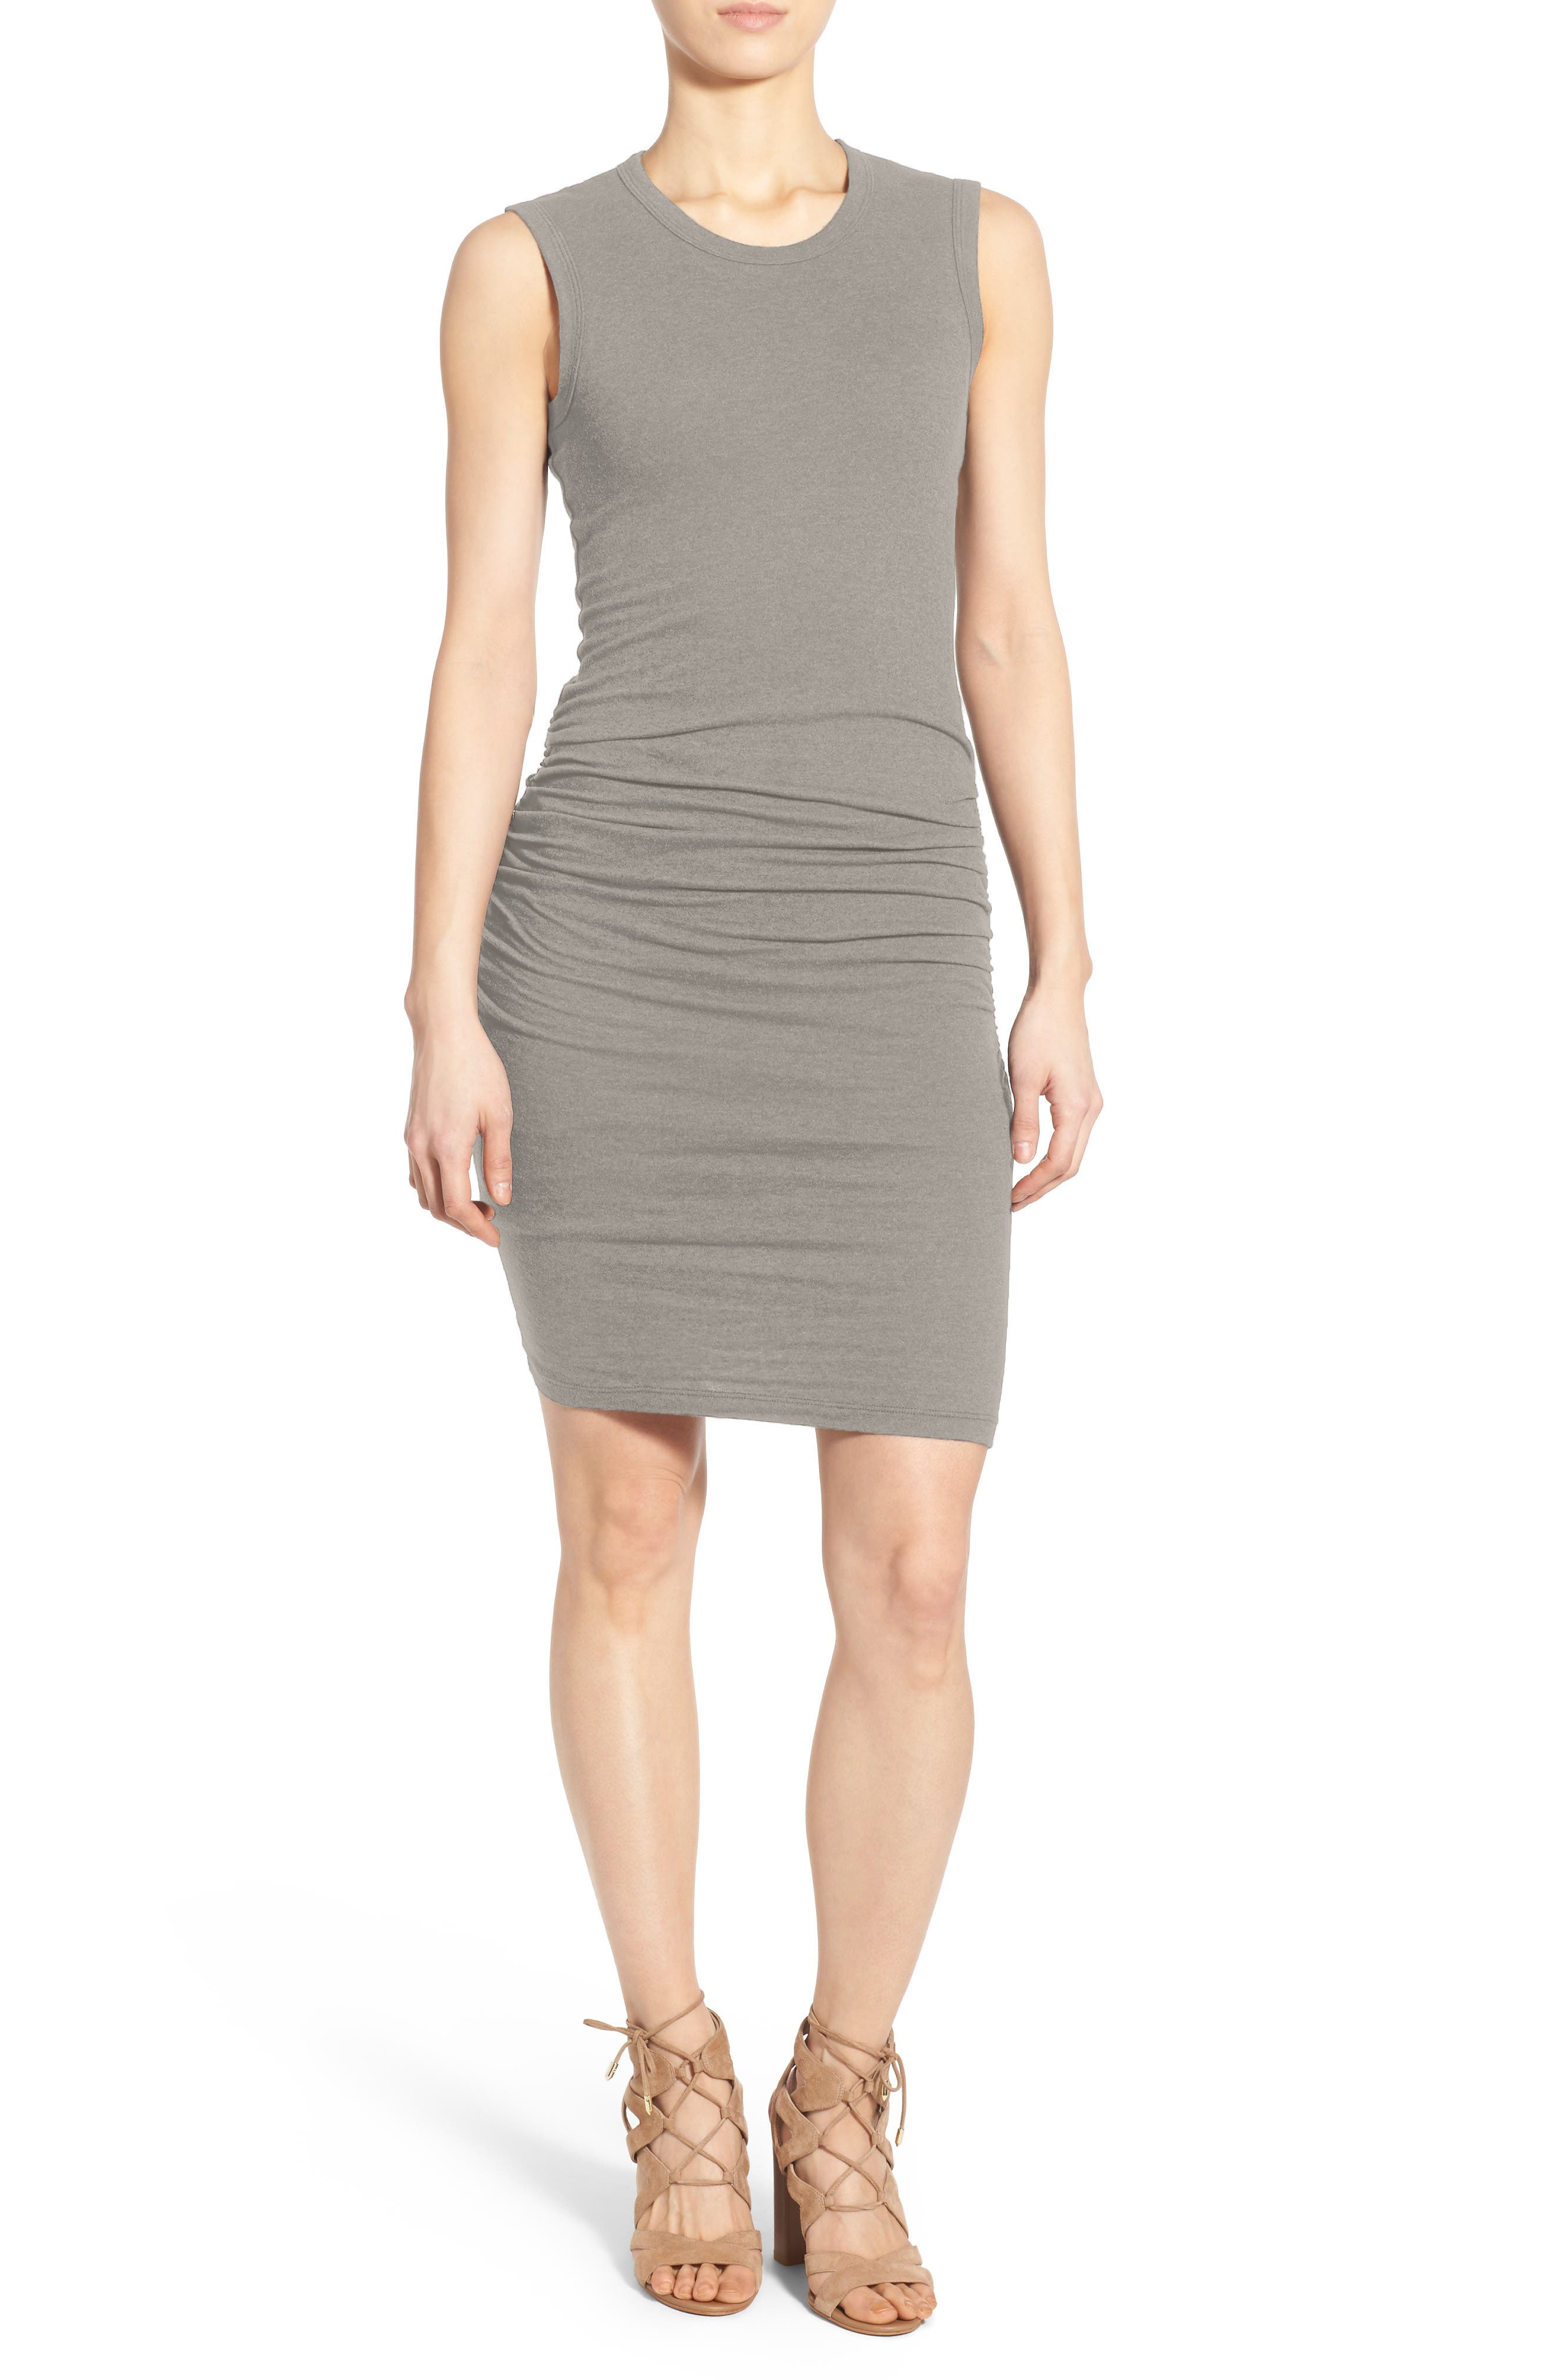 Ruched Tank Dress,                             Alternate thumbnail 8, color,                             085